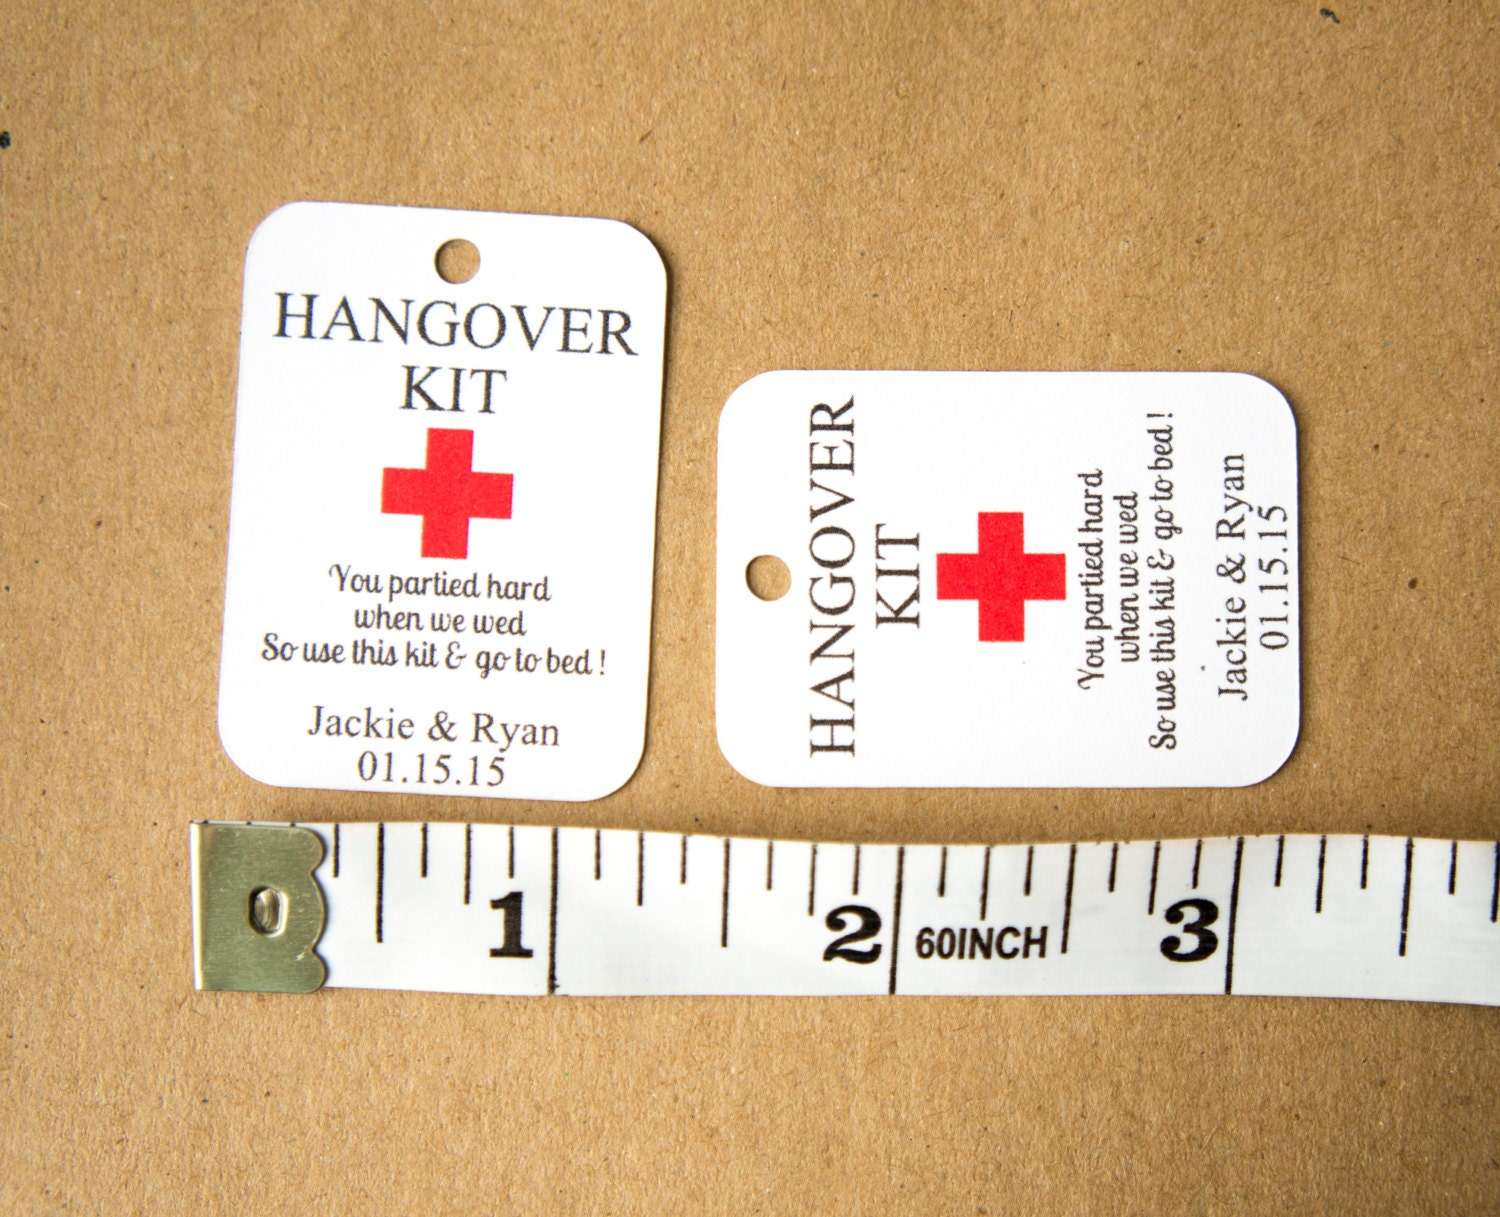 Wedding Favor Tag Kit : Kit Tags (1.75 by 1.25 inches), Hangover Kit Wedding Favor Tags ...